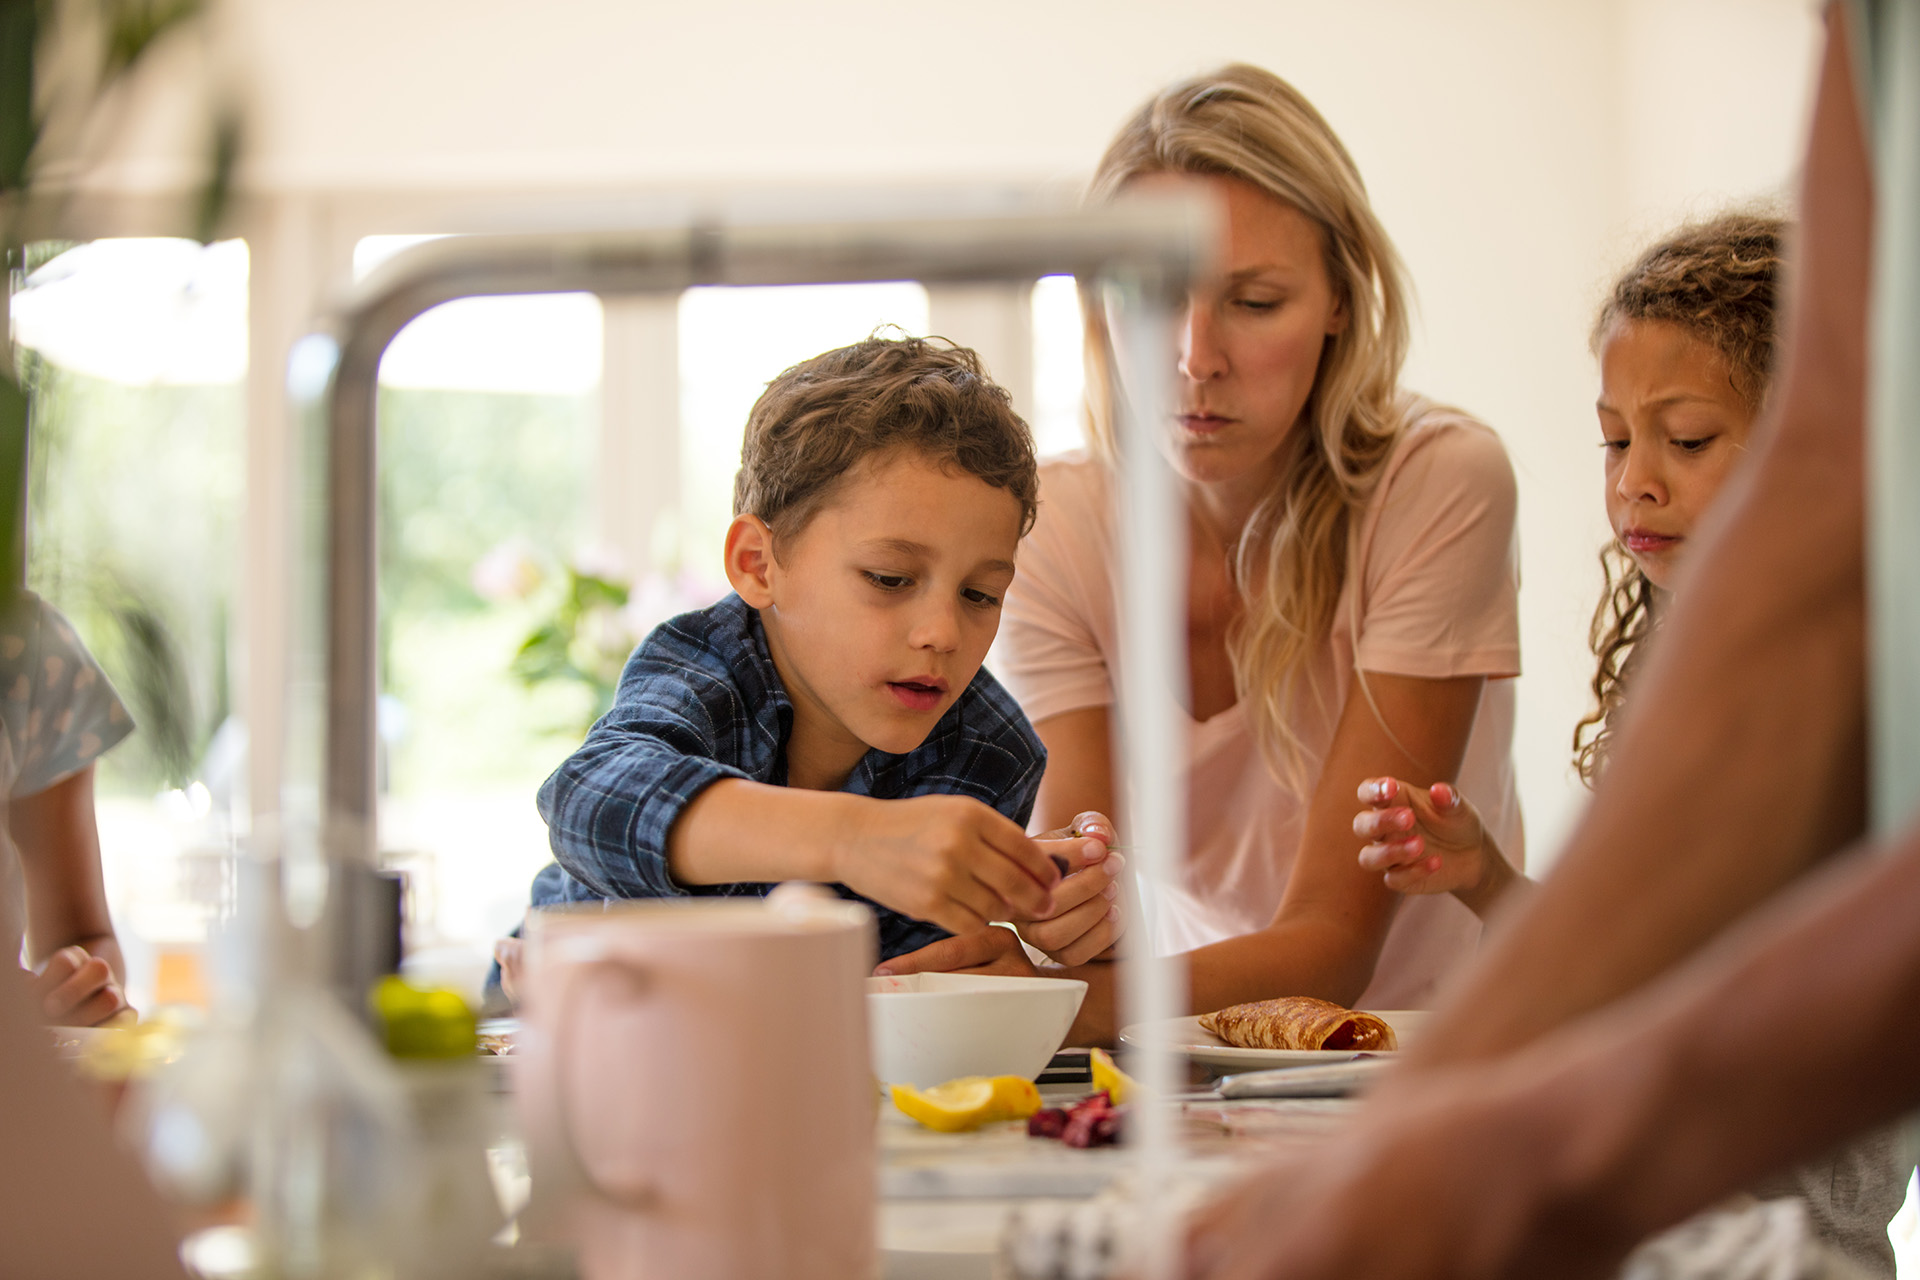 A father is washing his hands in the foreground, whilst the rest of the family eat their breakfast in the background